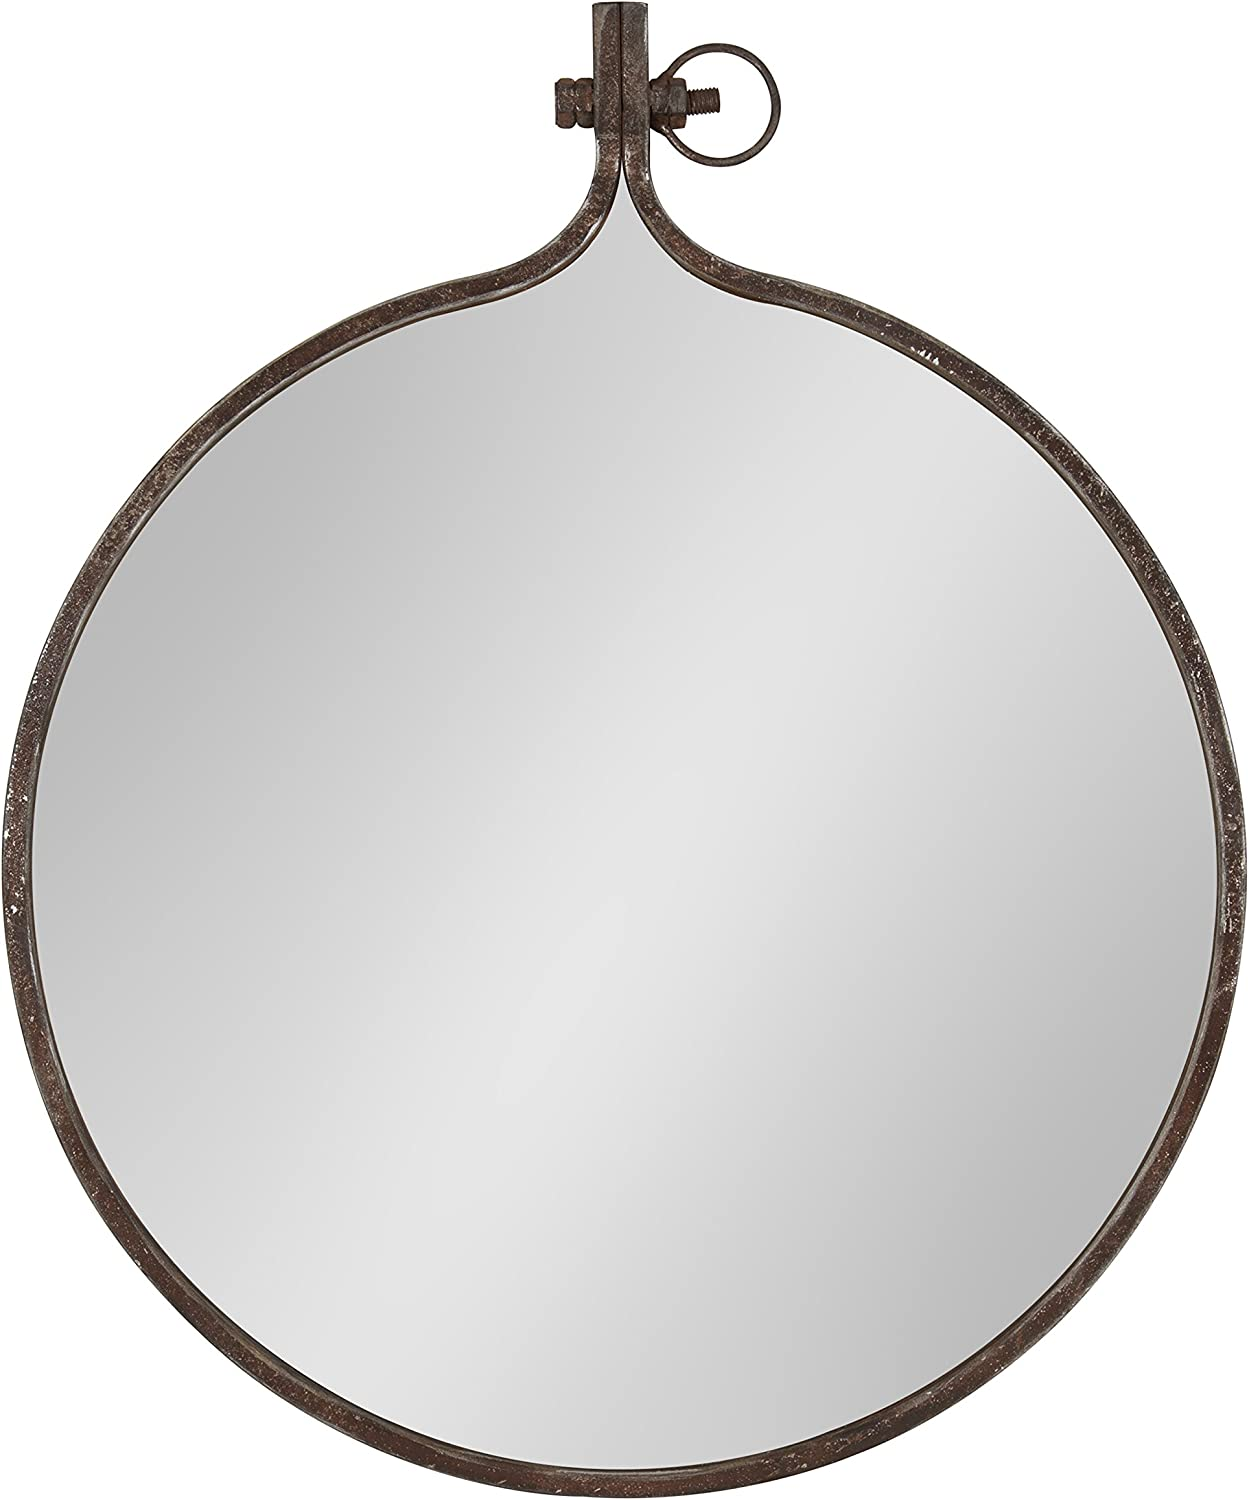 Kate and Laurel Yitro Round Industrial Rustic Metal Framed Wall Mirror, 23.5x28.5, Rustic Metal, Chic Industrial Accent Mirror for Wall